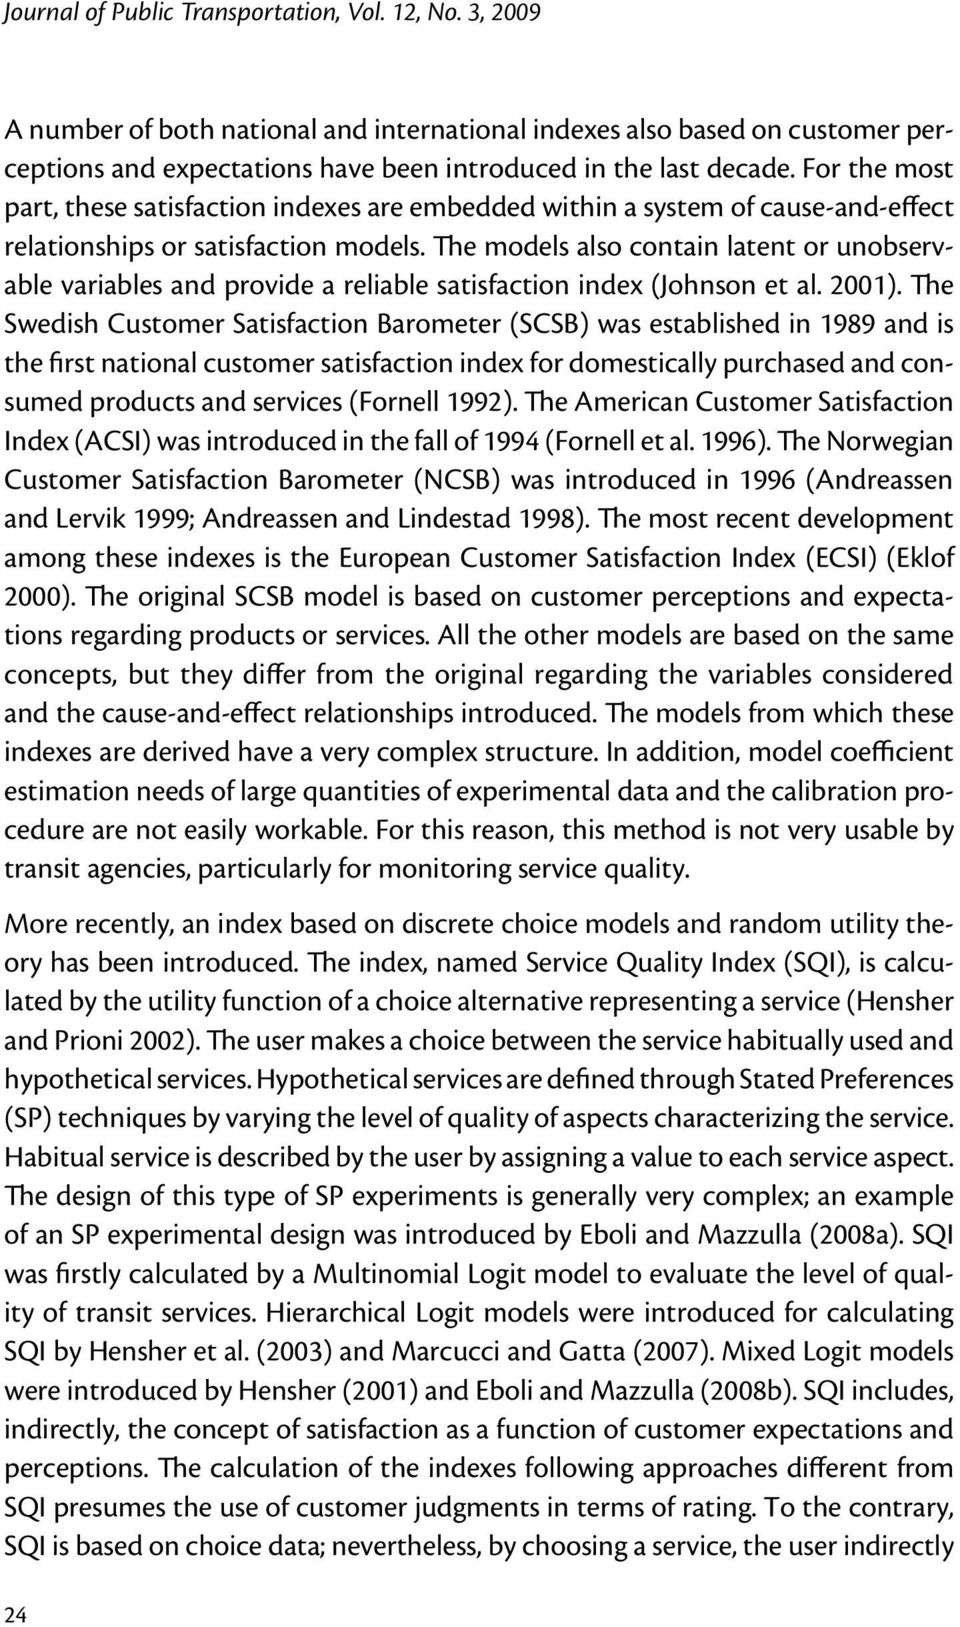 The models also contain latent or unobservable variables and provide a reliable satisfaction index (Johnson et al. 2001).